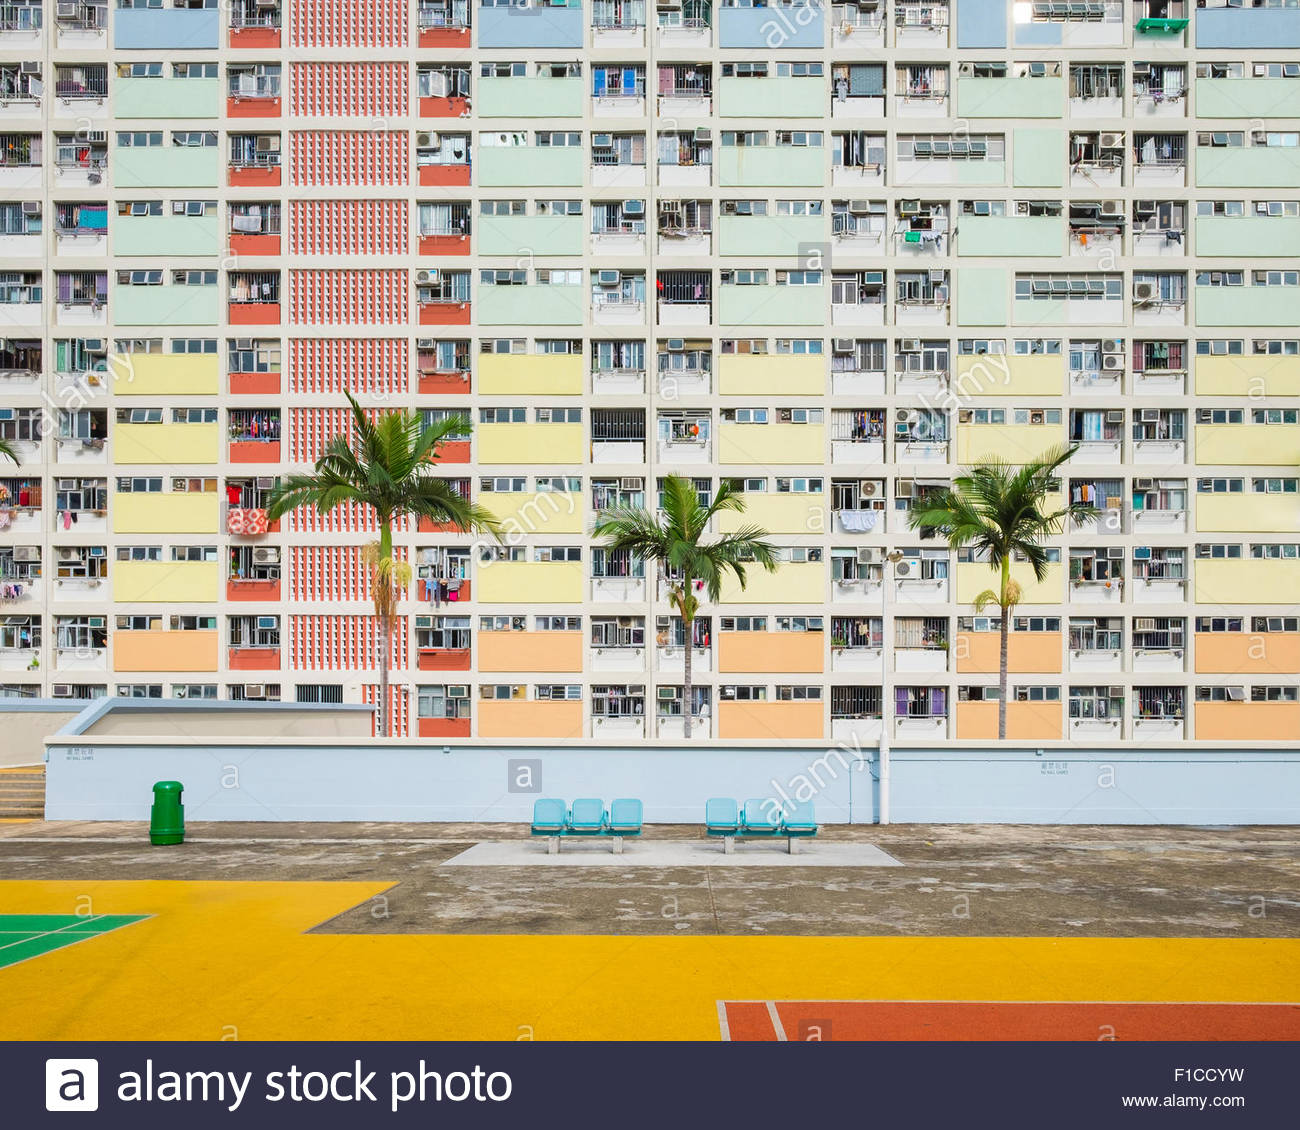 Choi Hung Estate, one of the oldest public housing estates in Hong Kong, Wong Tai Sin District, Kowloon, Hong Kong, - Stock Image